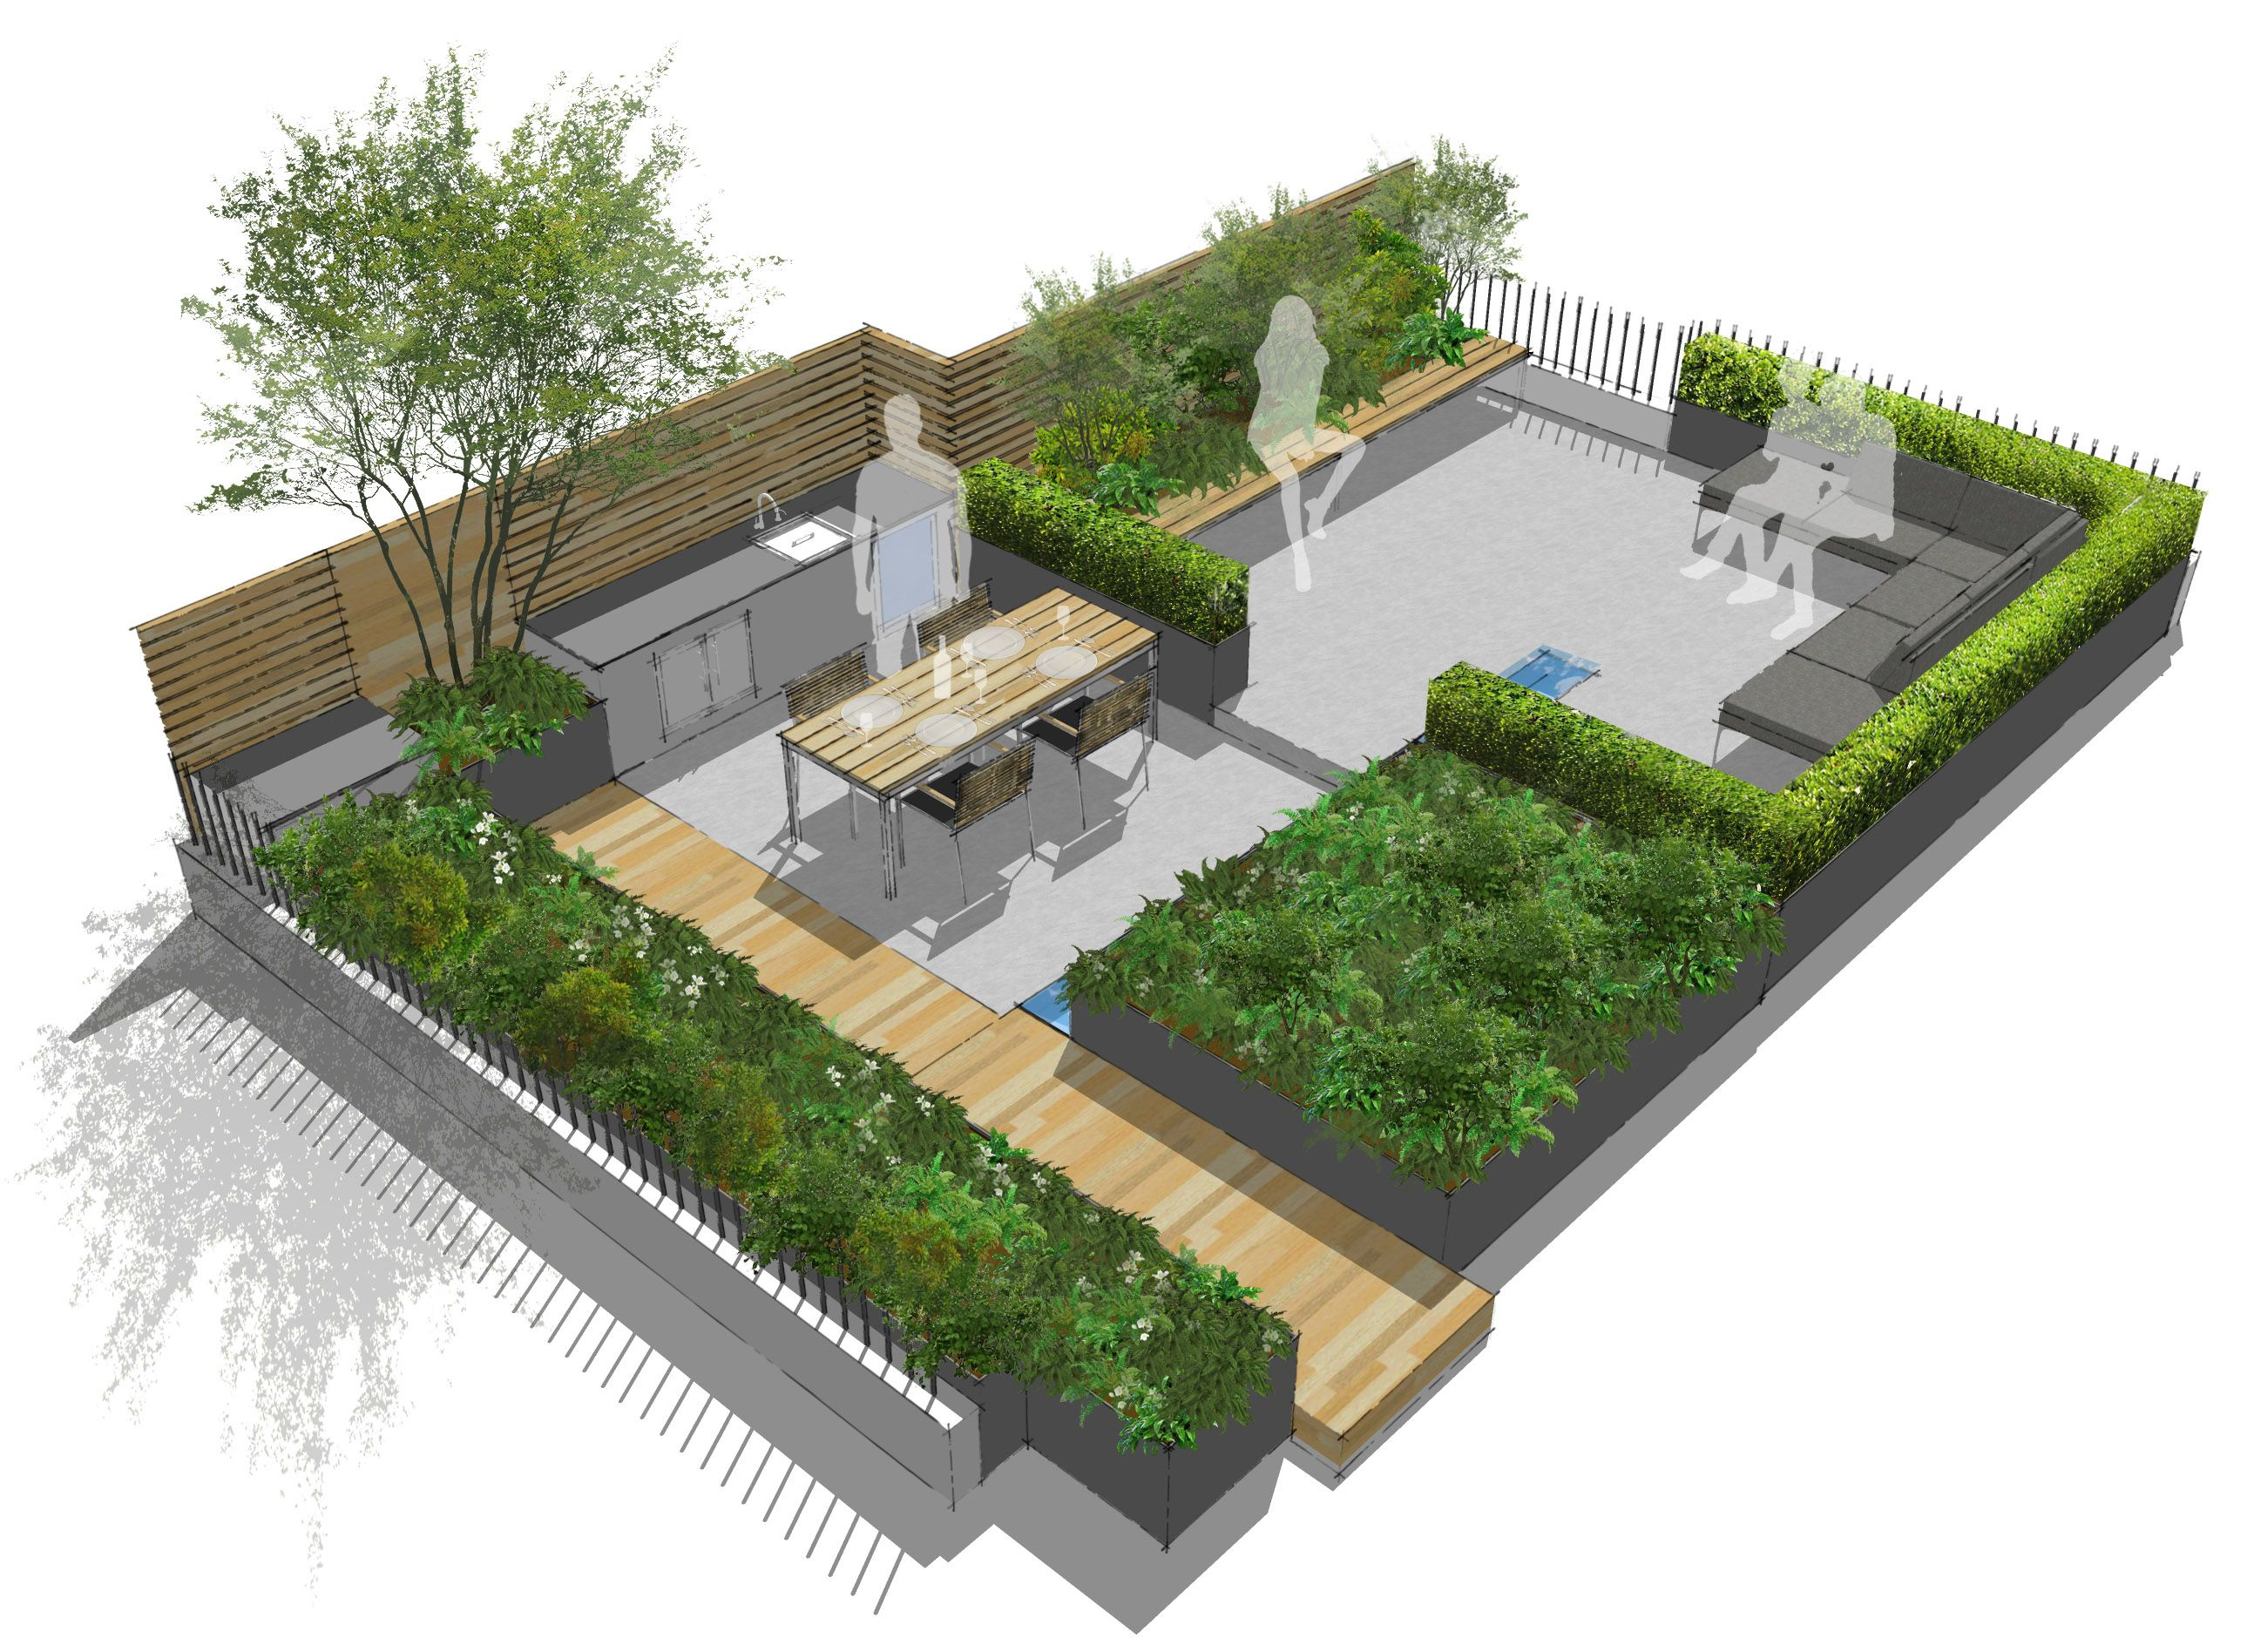 Creffield House London Contemporary London Roof Terrace Https Www Aralia Org Uk Portfolio Roof Garden Design Rooftop Terrace Design Terrace Garden Design